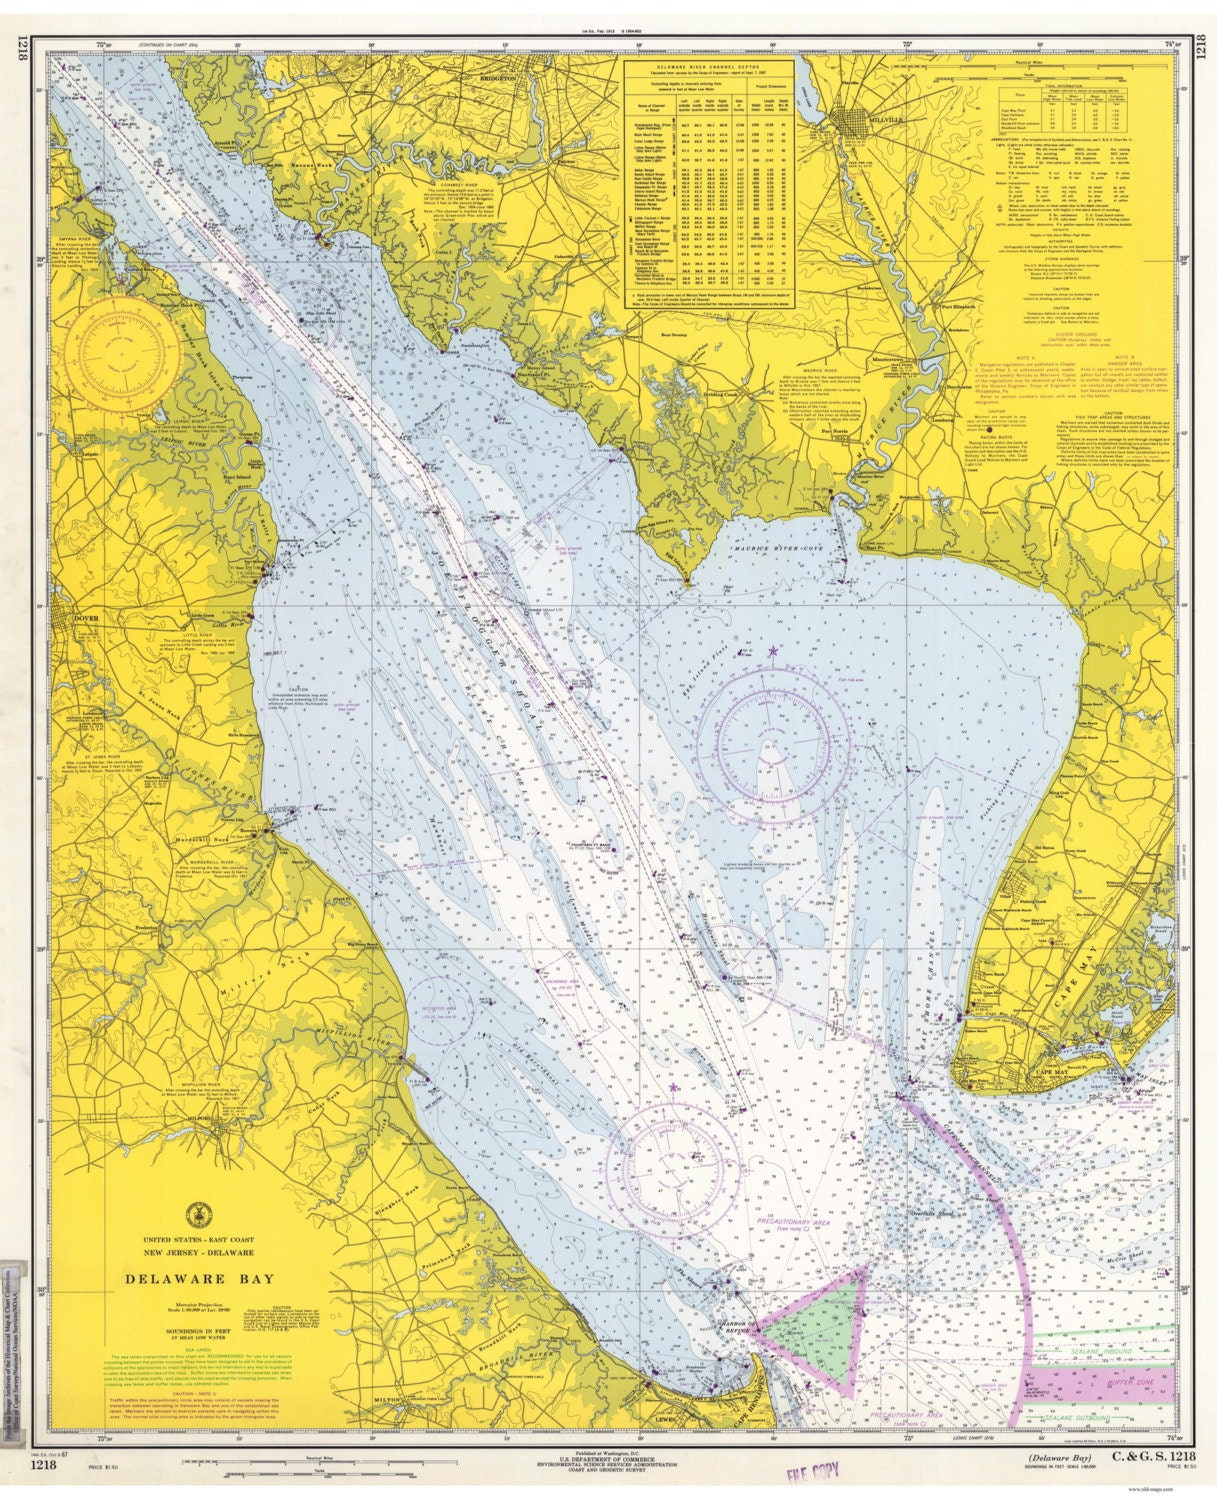 Delaware Bay 1967 New Jersey Amp Delaware Nautical Map By Oldmap